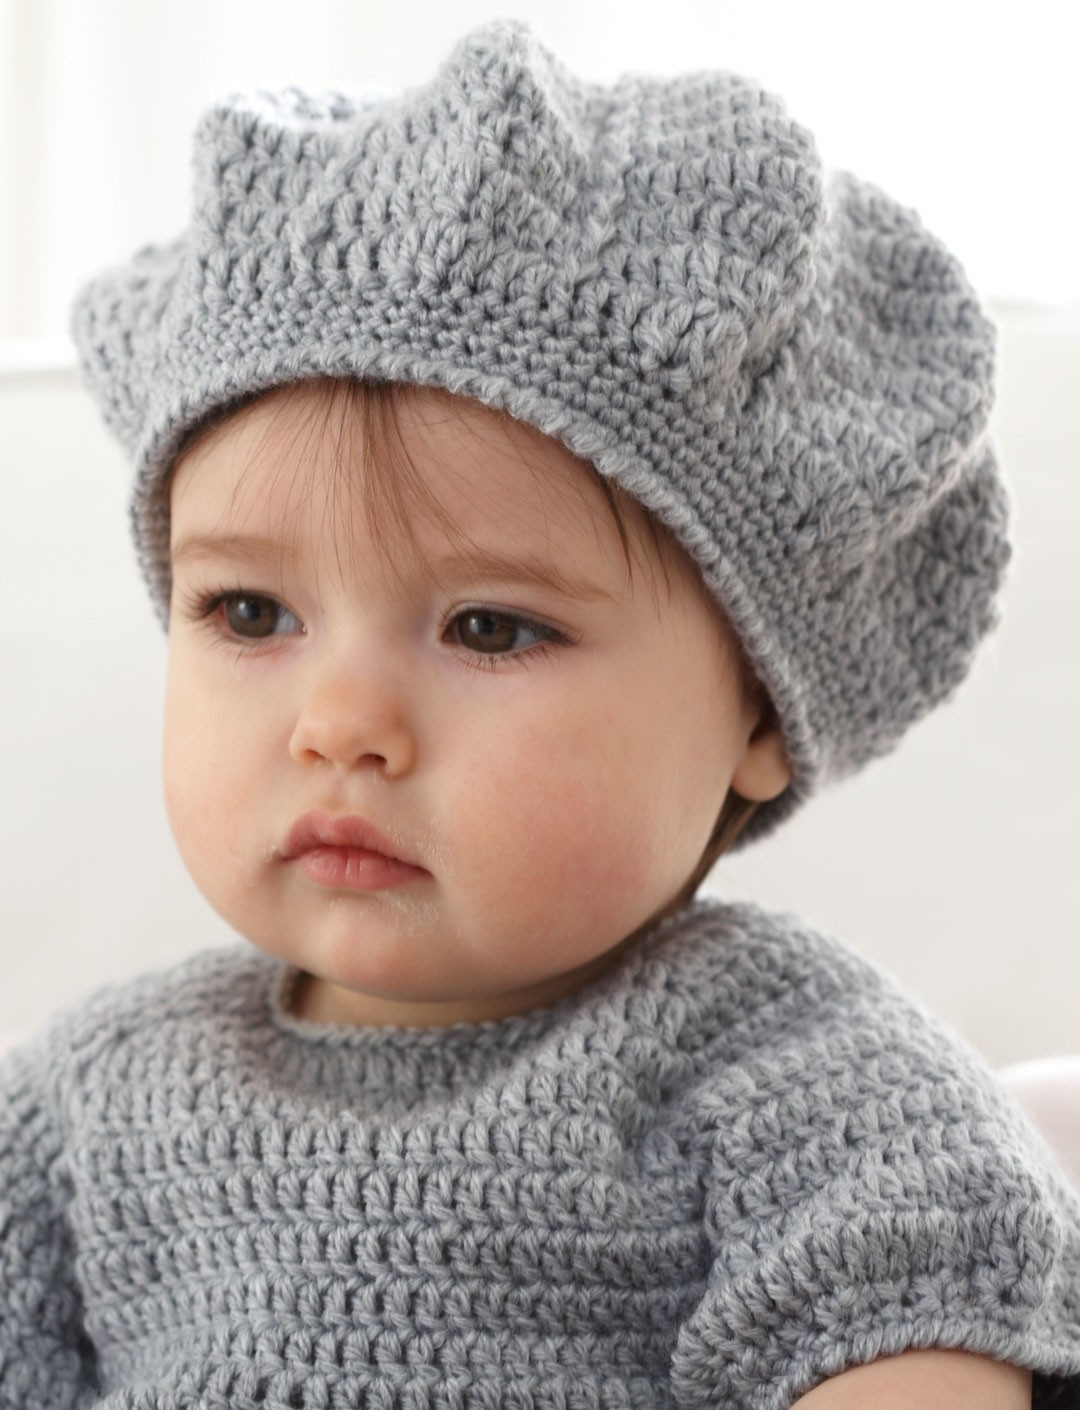 Knitted Beret Pattern Toddler : Patons I Heart My Dress, Crochet Pattern Yarnspirations